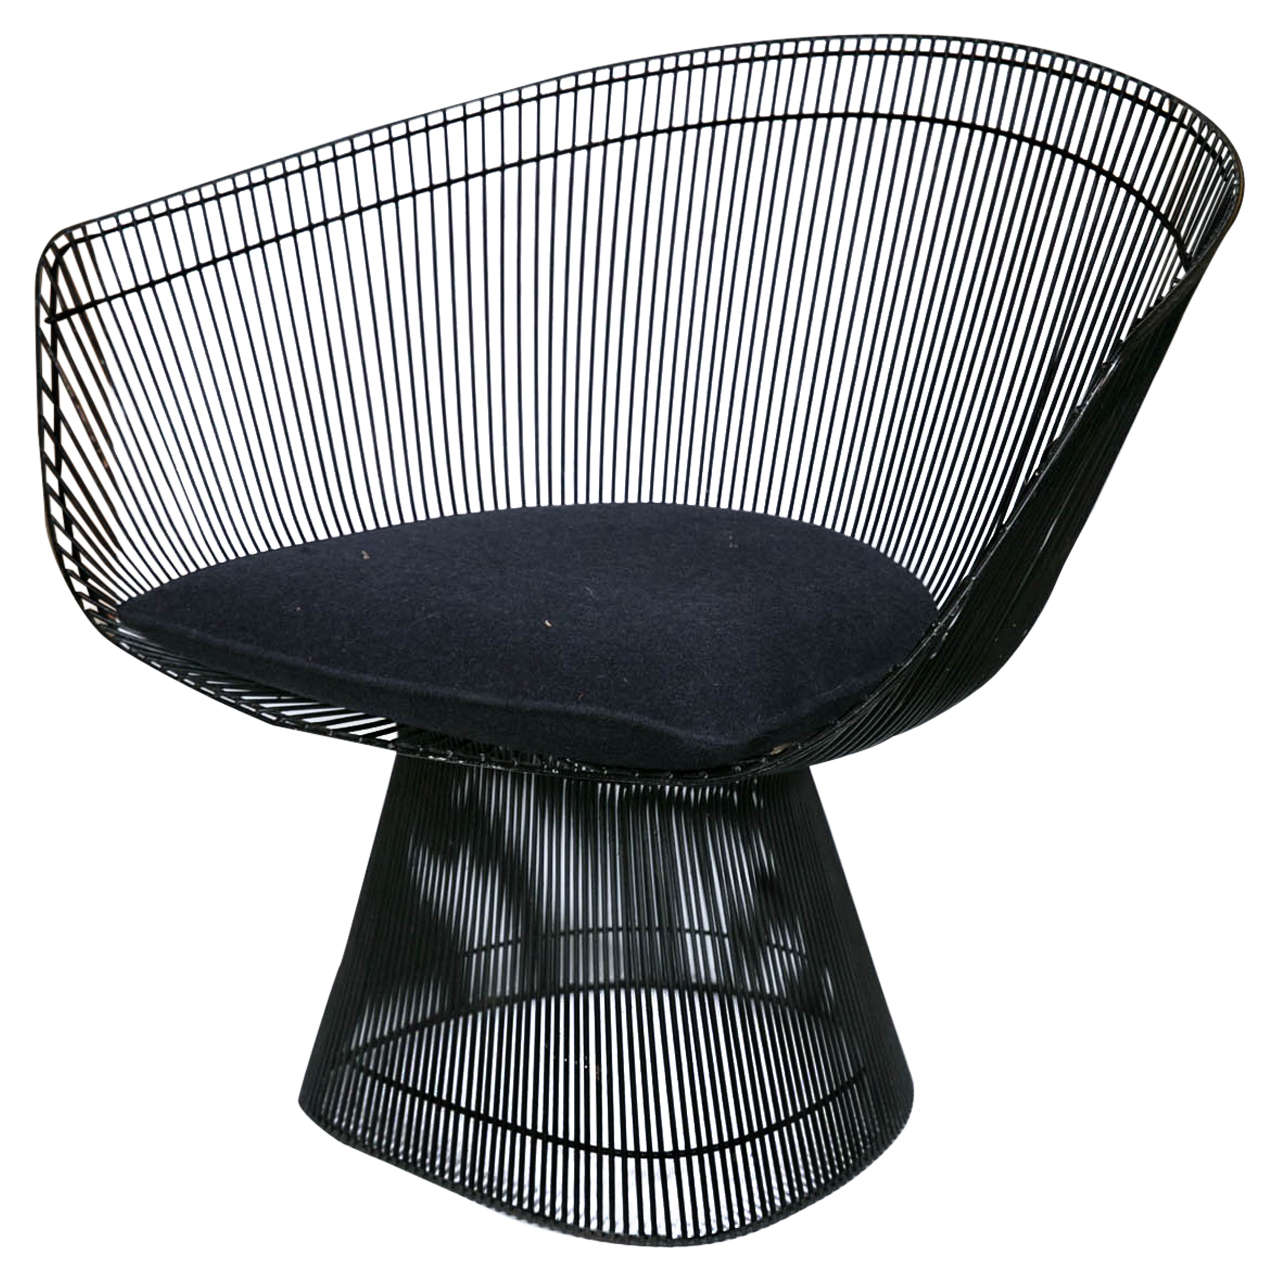 Midcentury Warren Platner Lounge Chair for Knoll 1